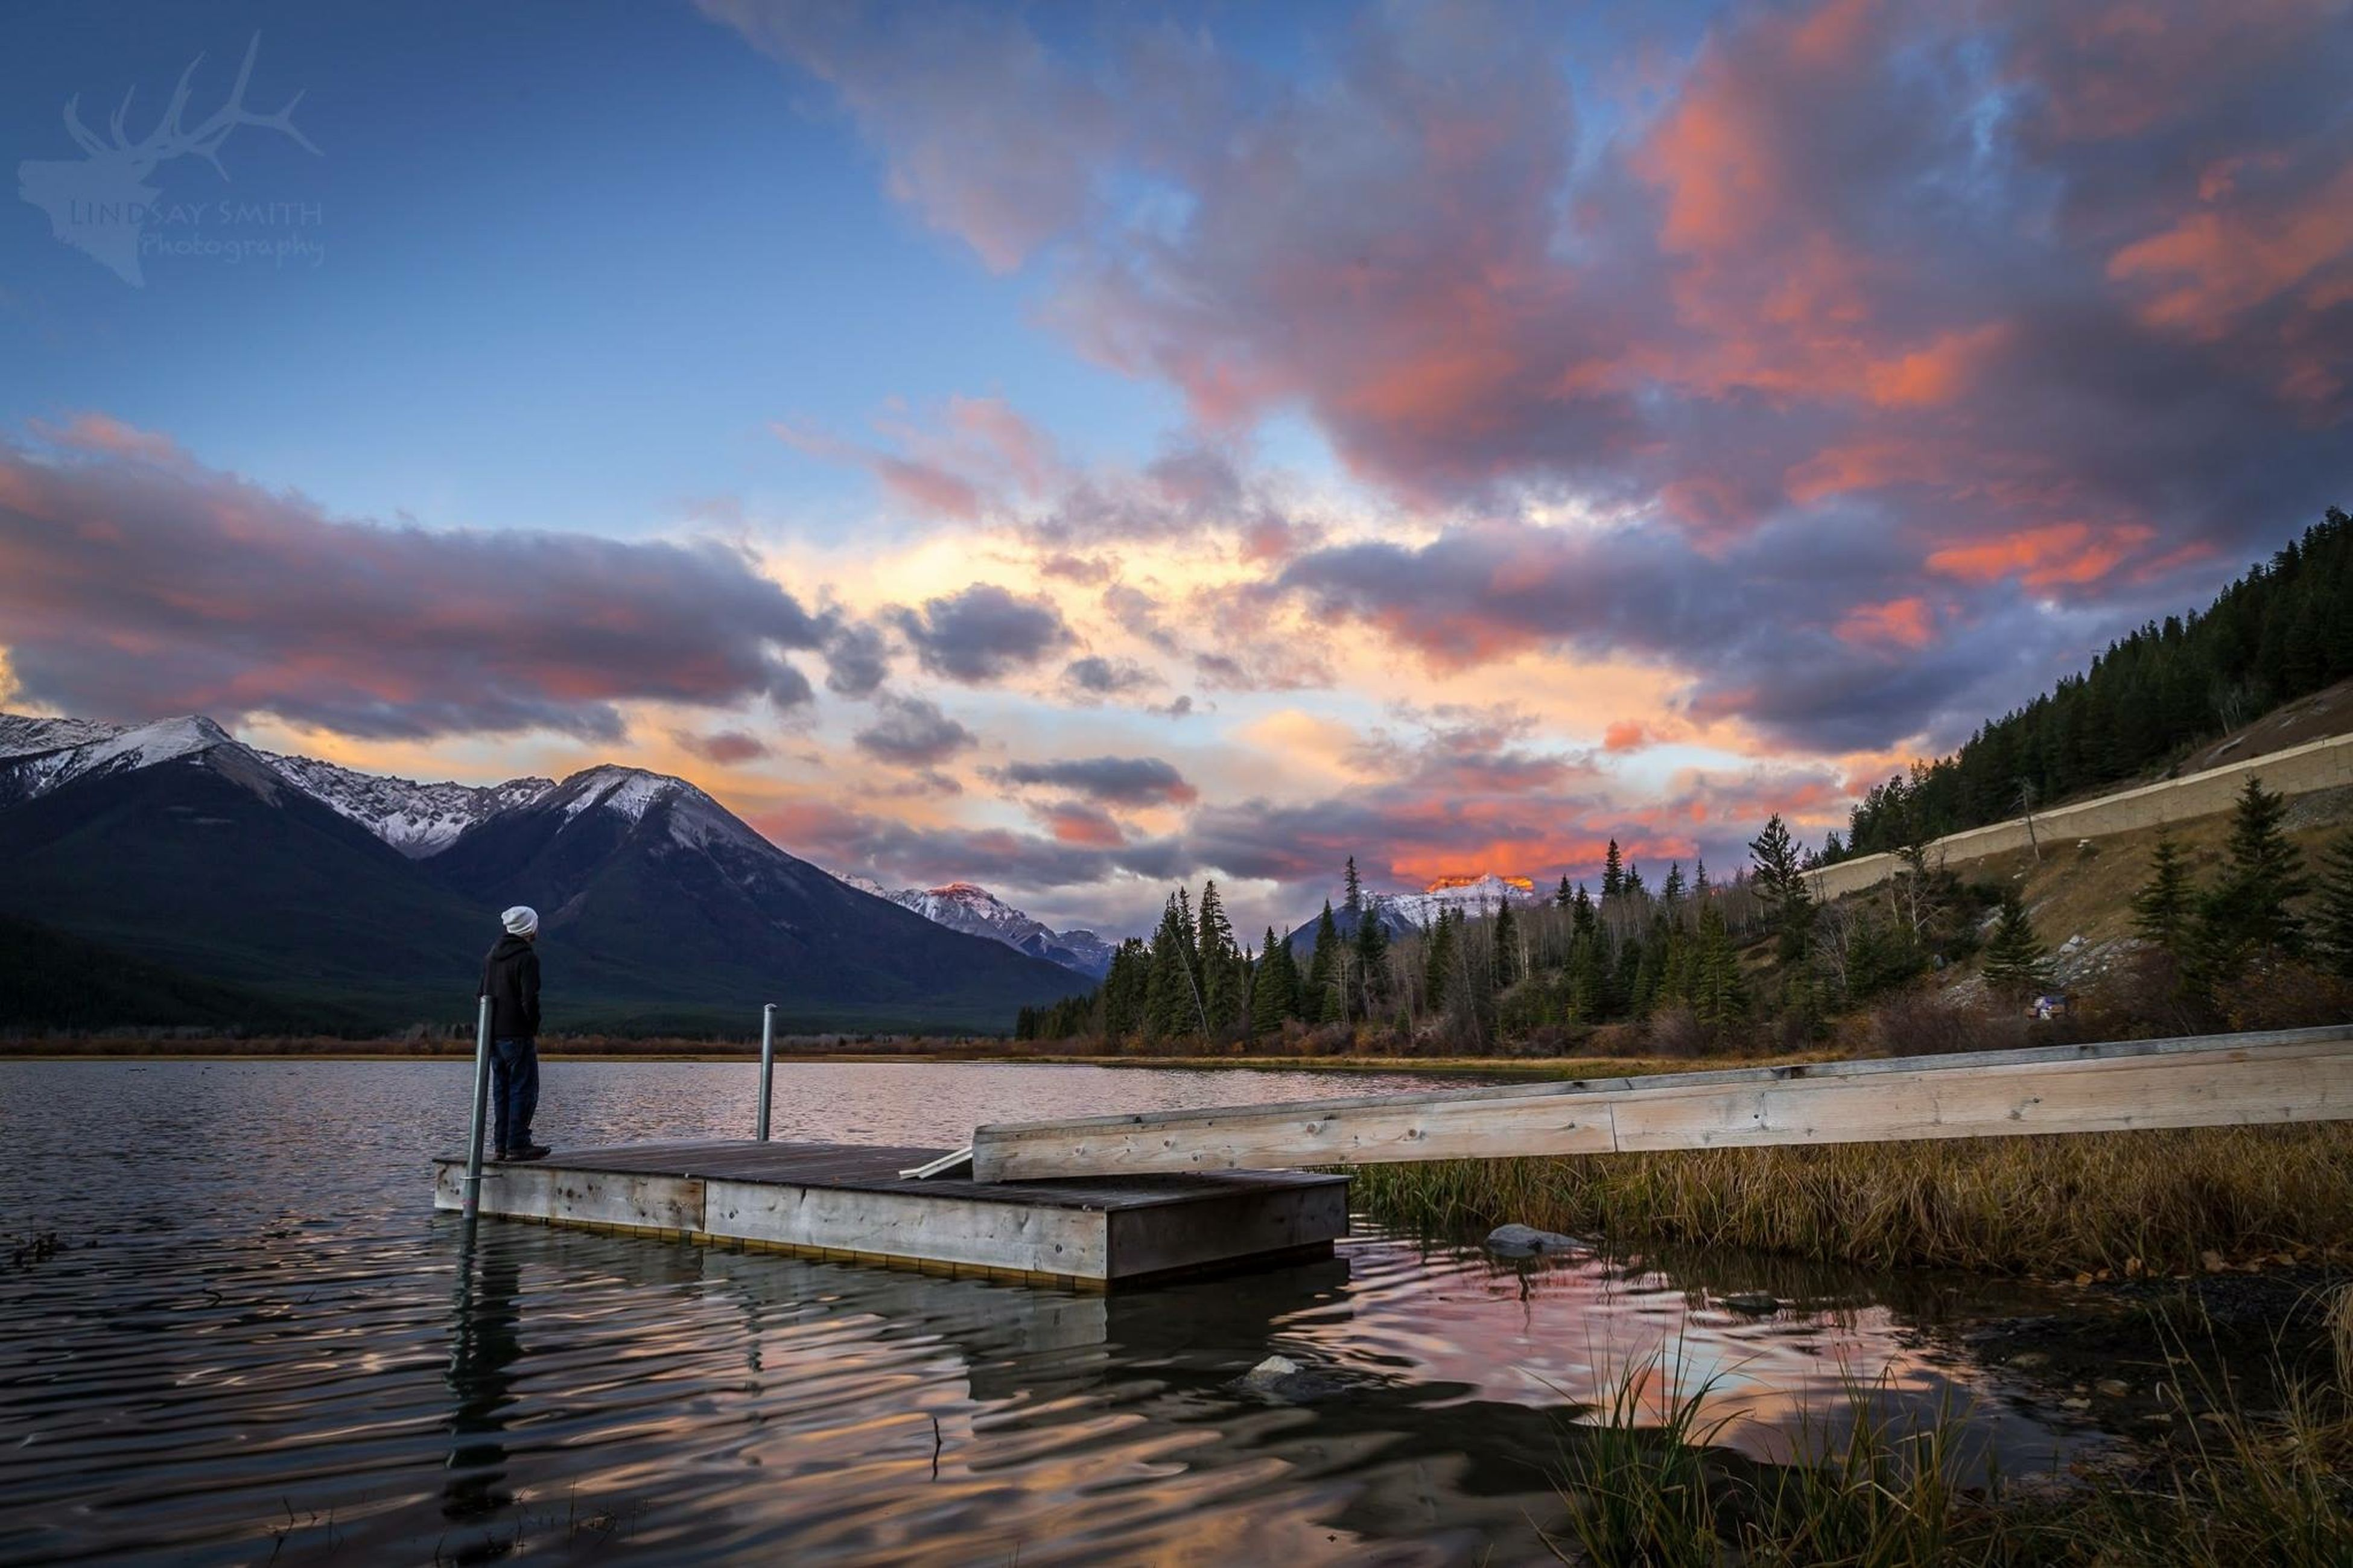 water, sky, sunset, cloud - sky, tranquility, tranquil scene, scenics, beauty in nature, lake, cloudy, nature, mountain, cloud, idyllic, pier, orange color, dramatic sky, reflection, dusk, sea